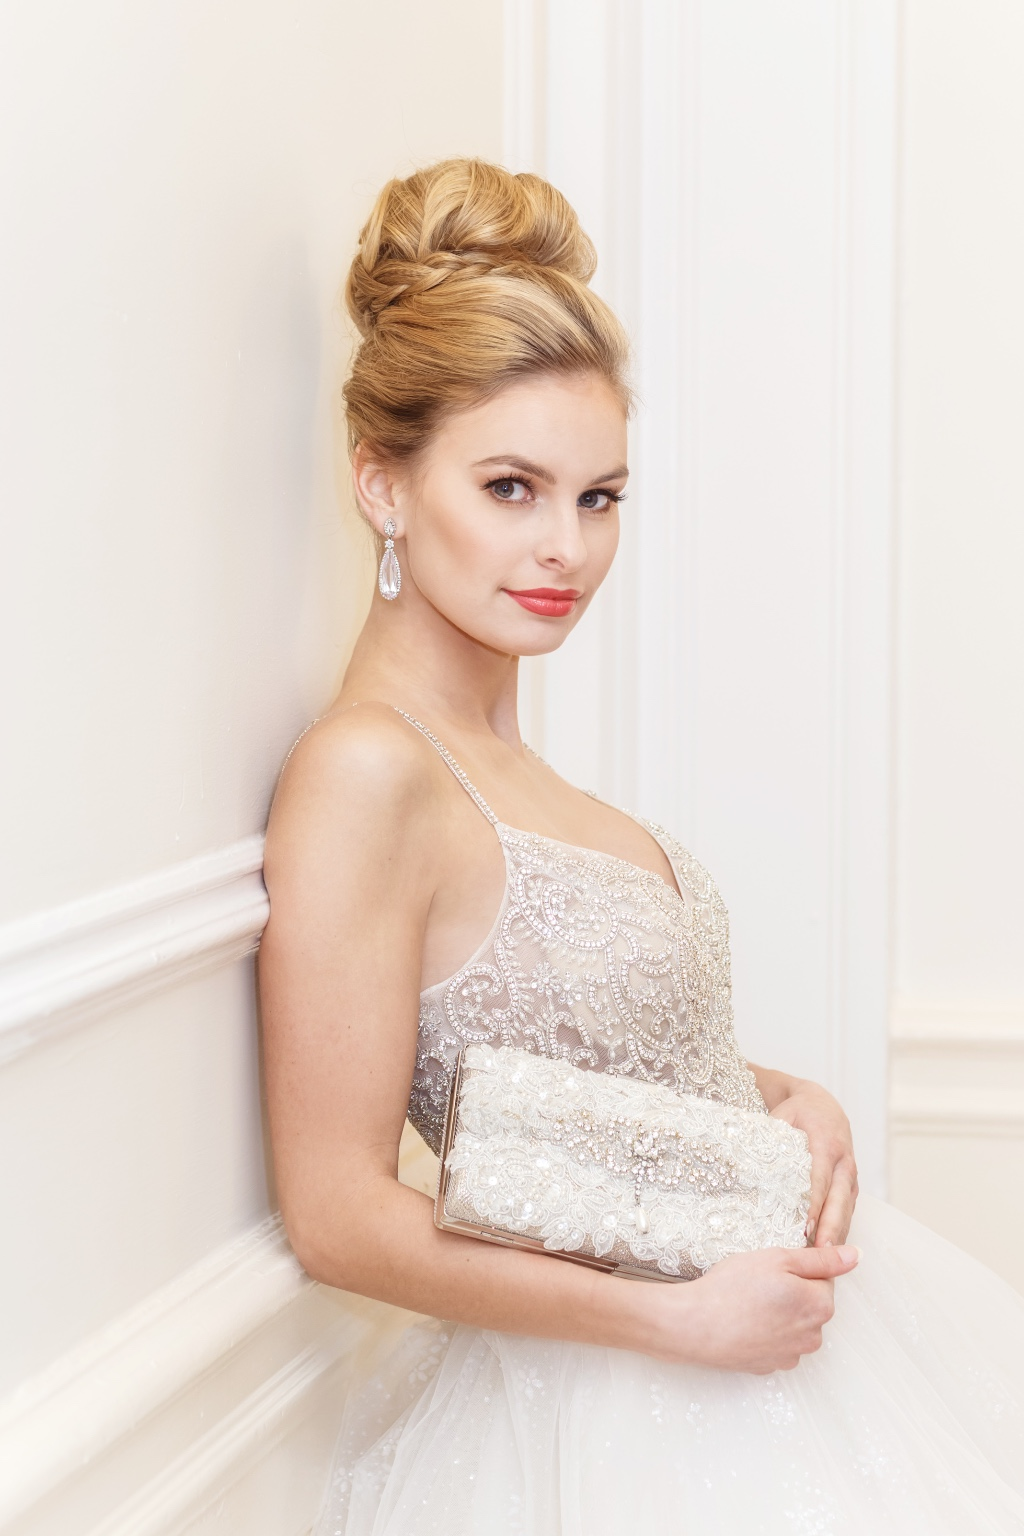 Gorgeous one of a kind bridal clutches that are the perfect keepsake.